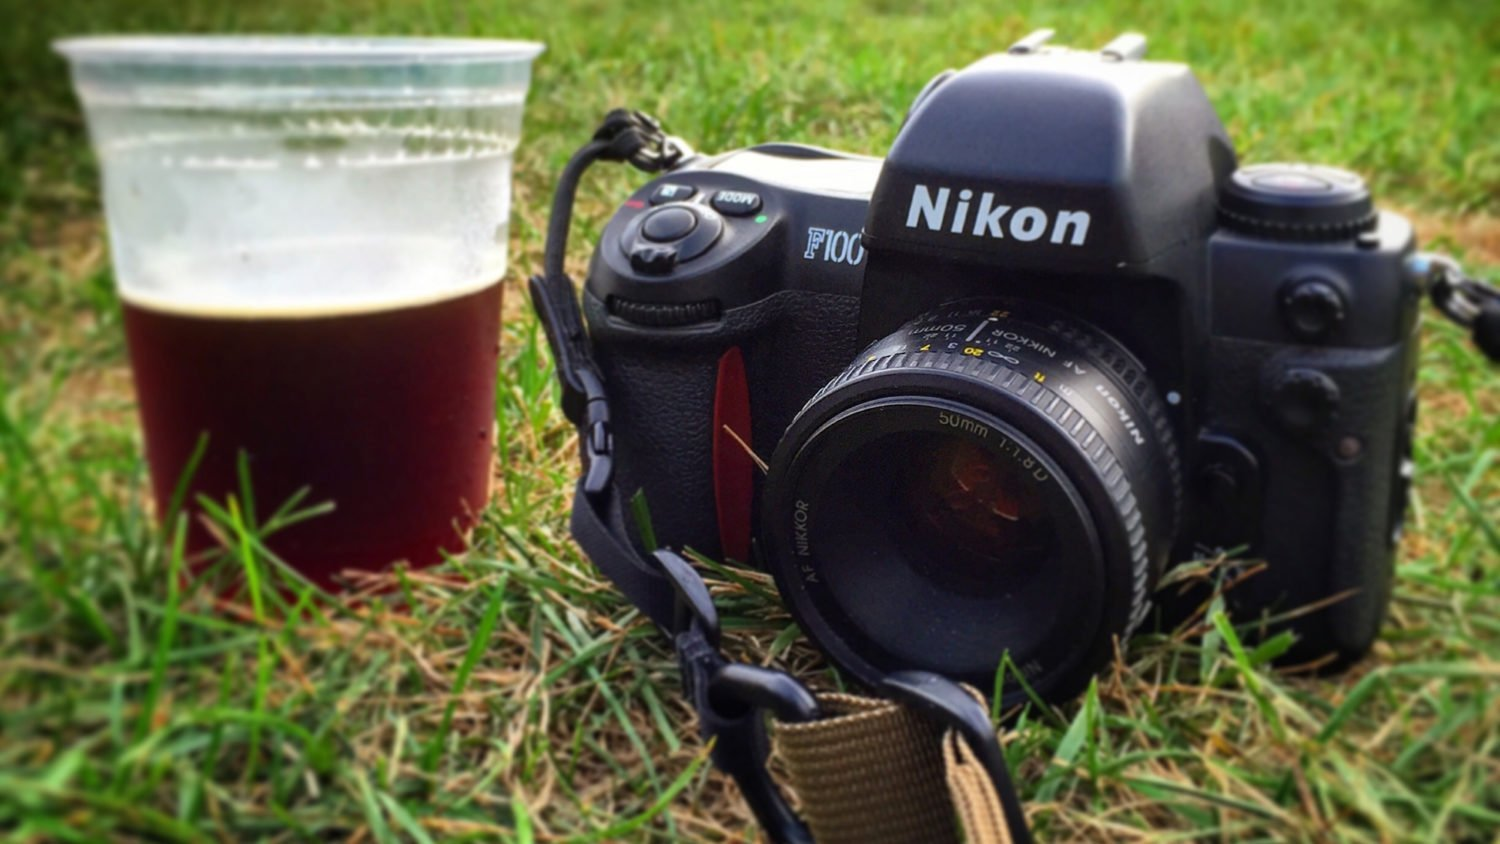 The Nikon F100 I used for this camera review